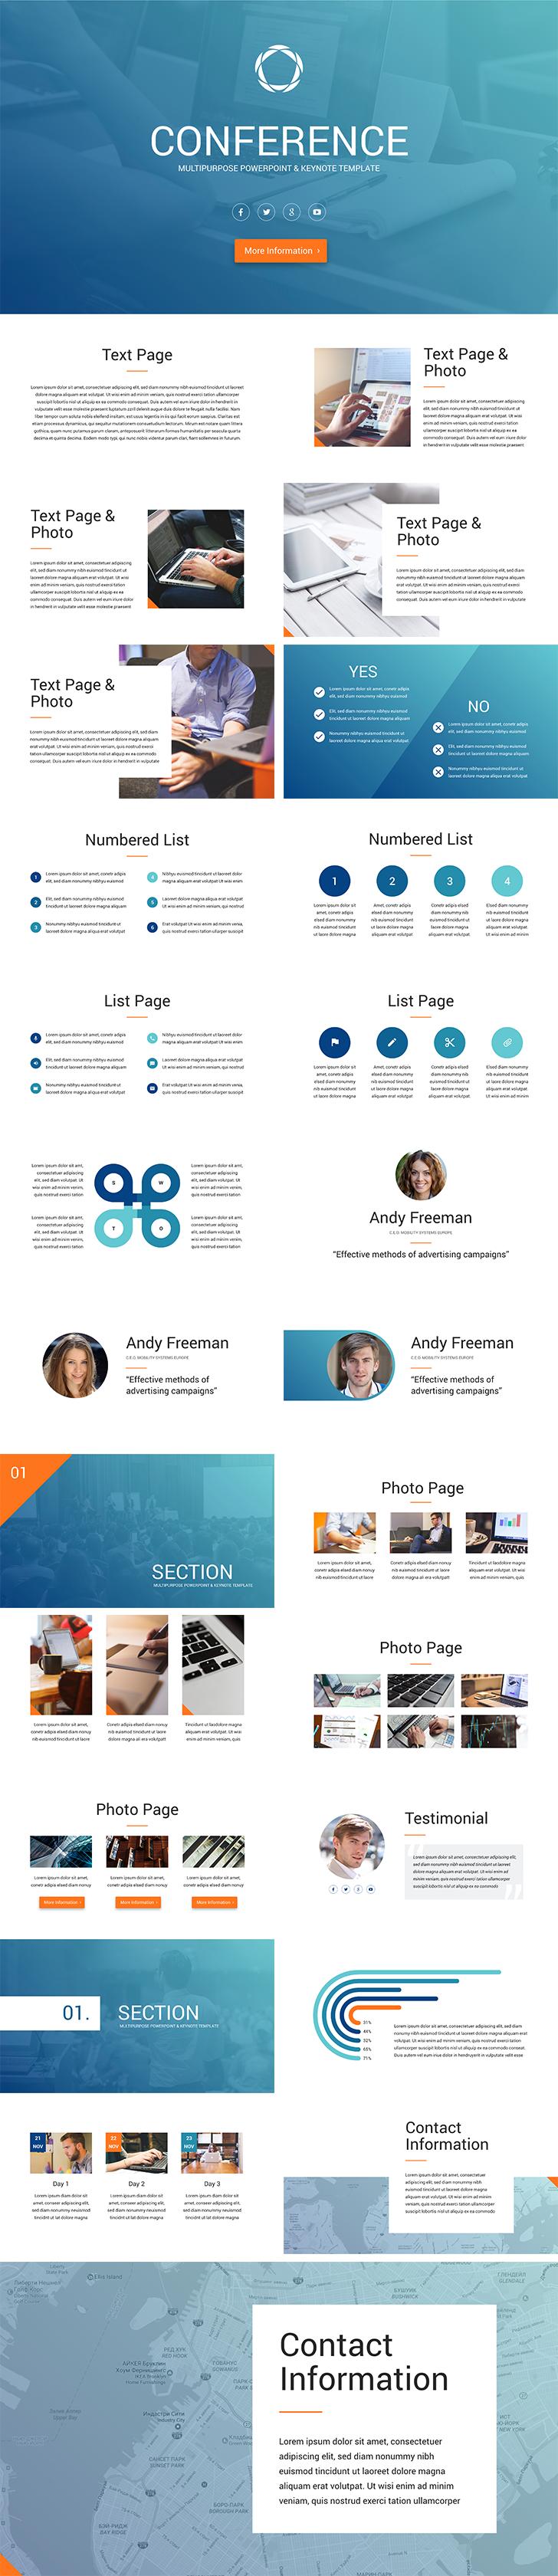 conference keynote template free download now